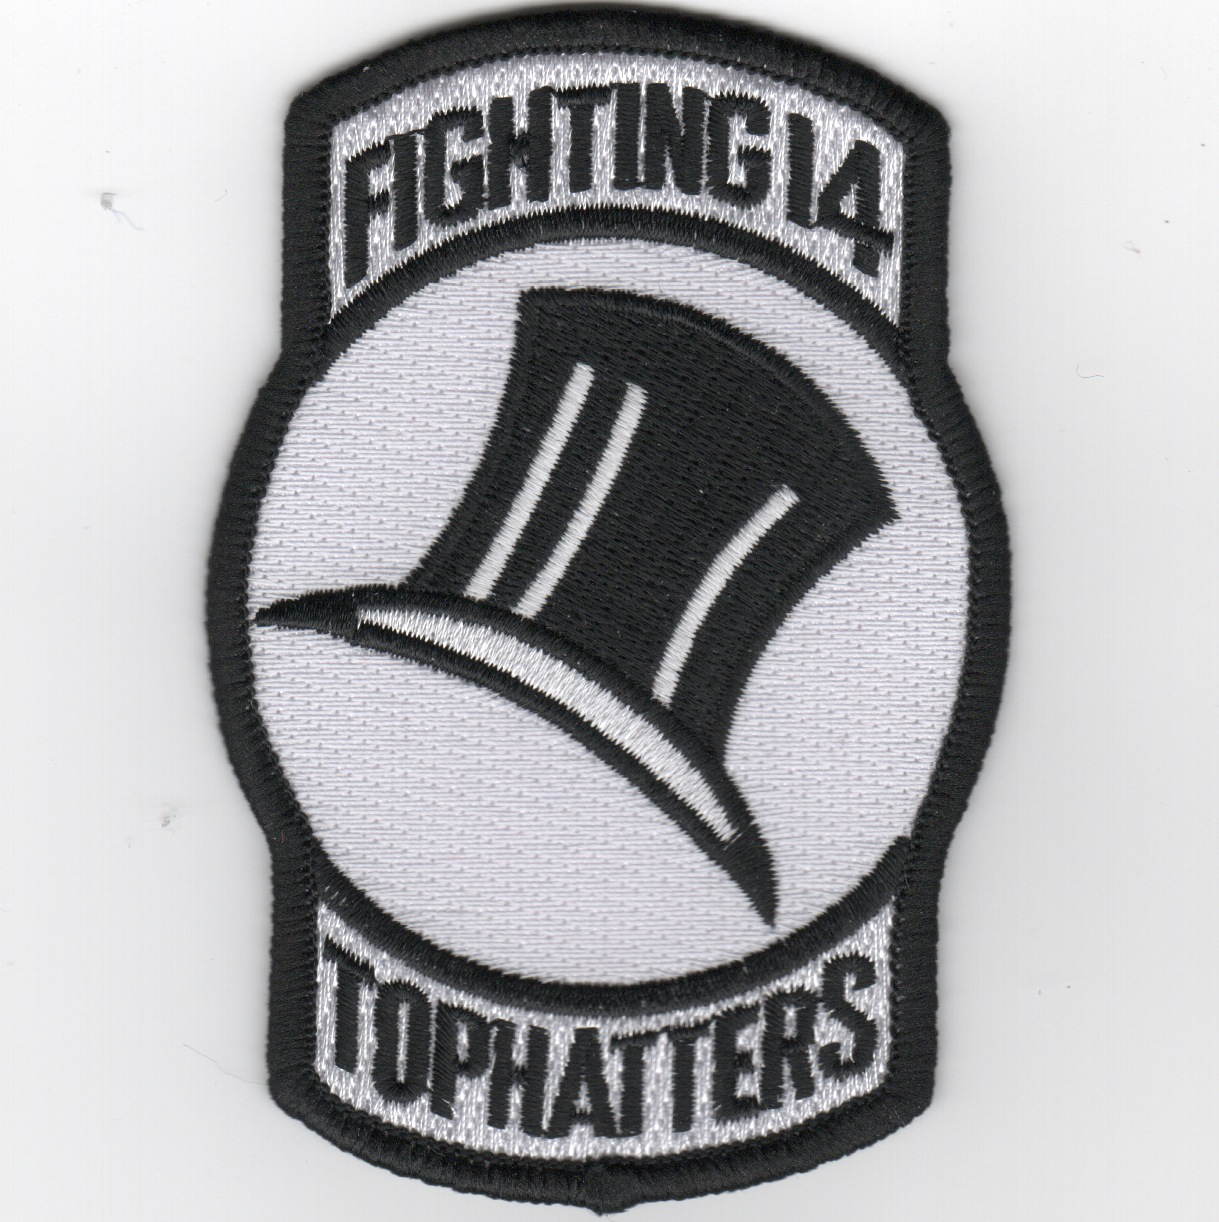 VF-14 Squadron Patch (Keyhole)